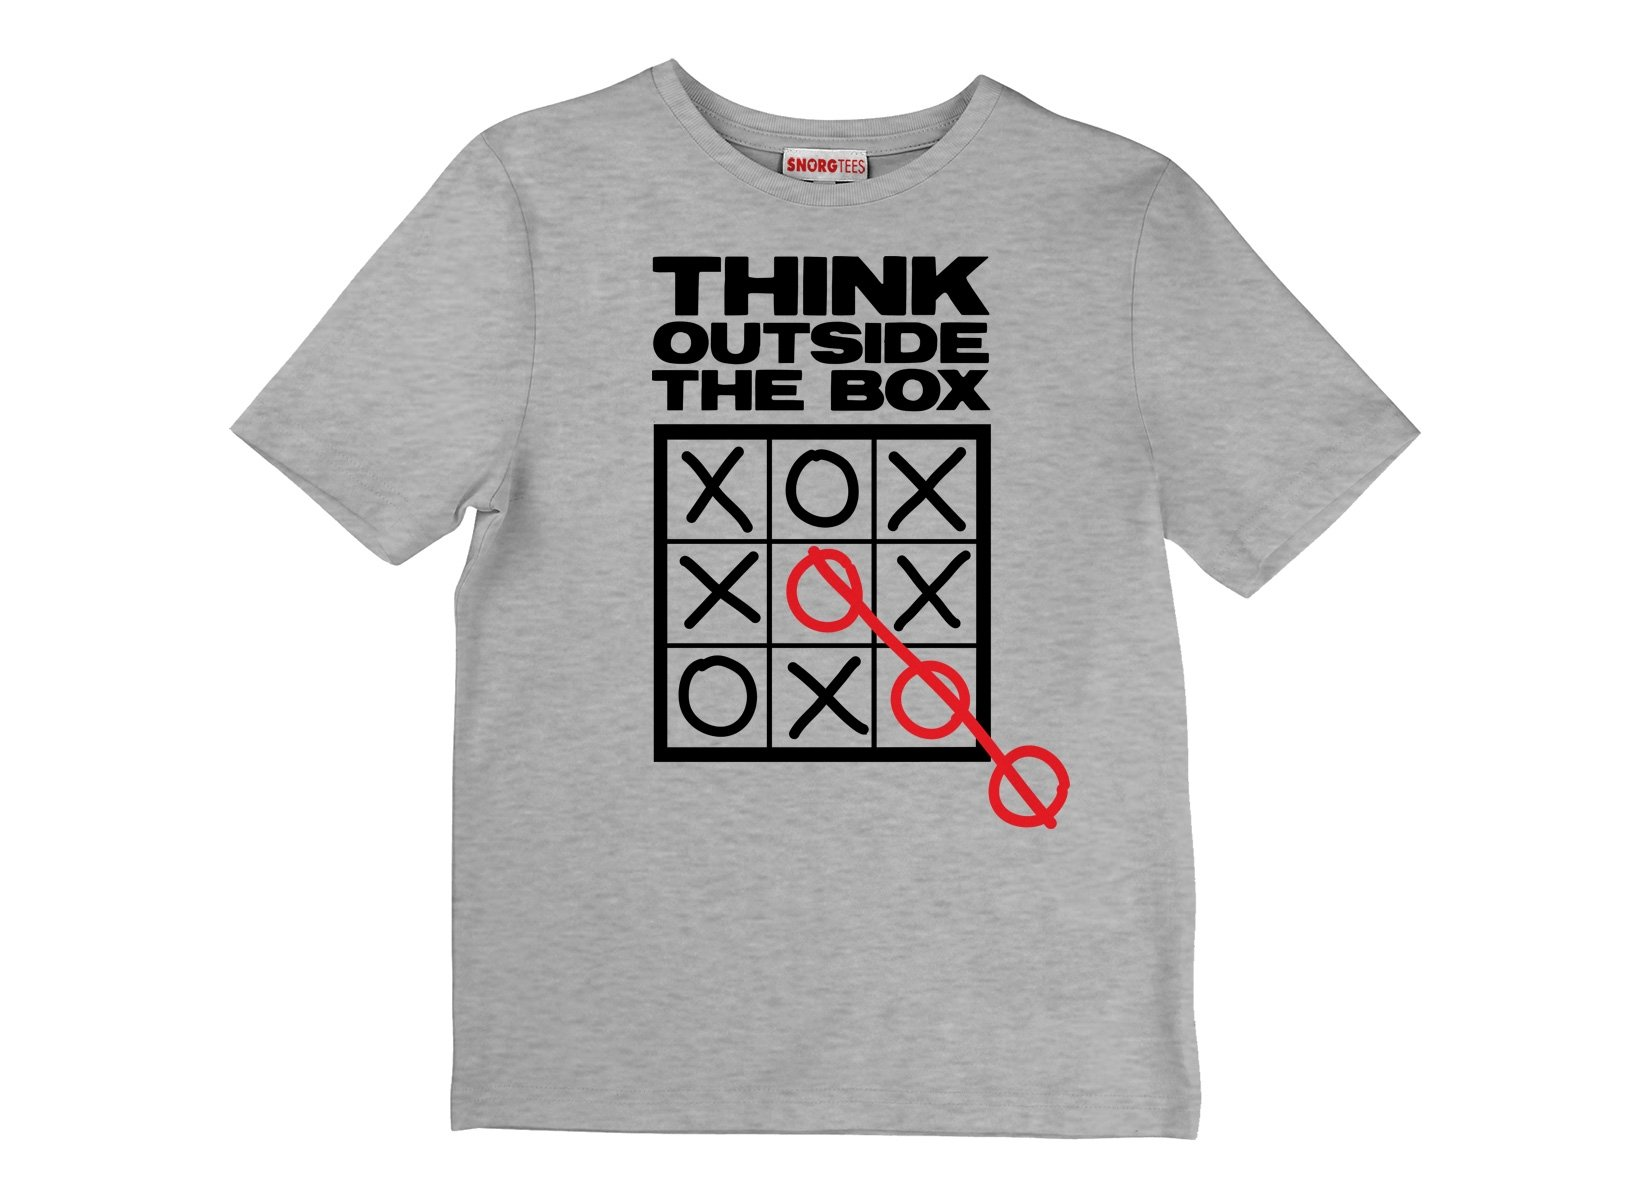 Think Outside The Box on Kids T-Shirt